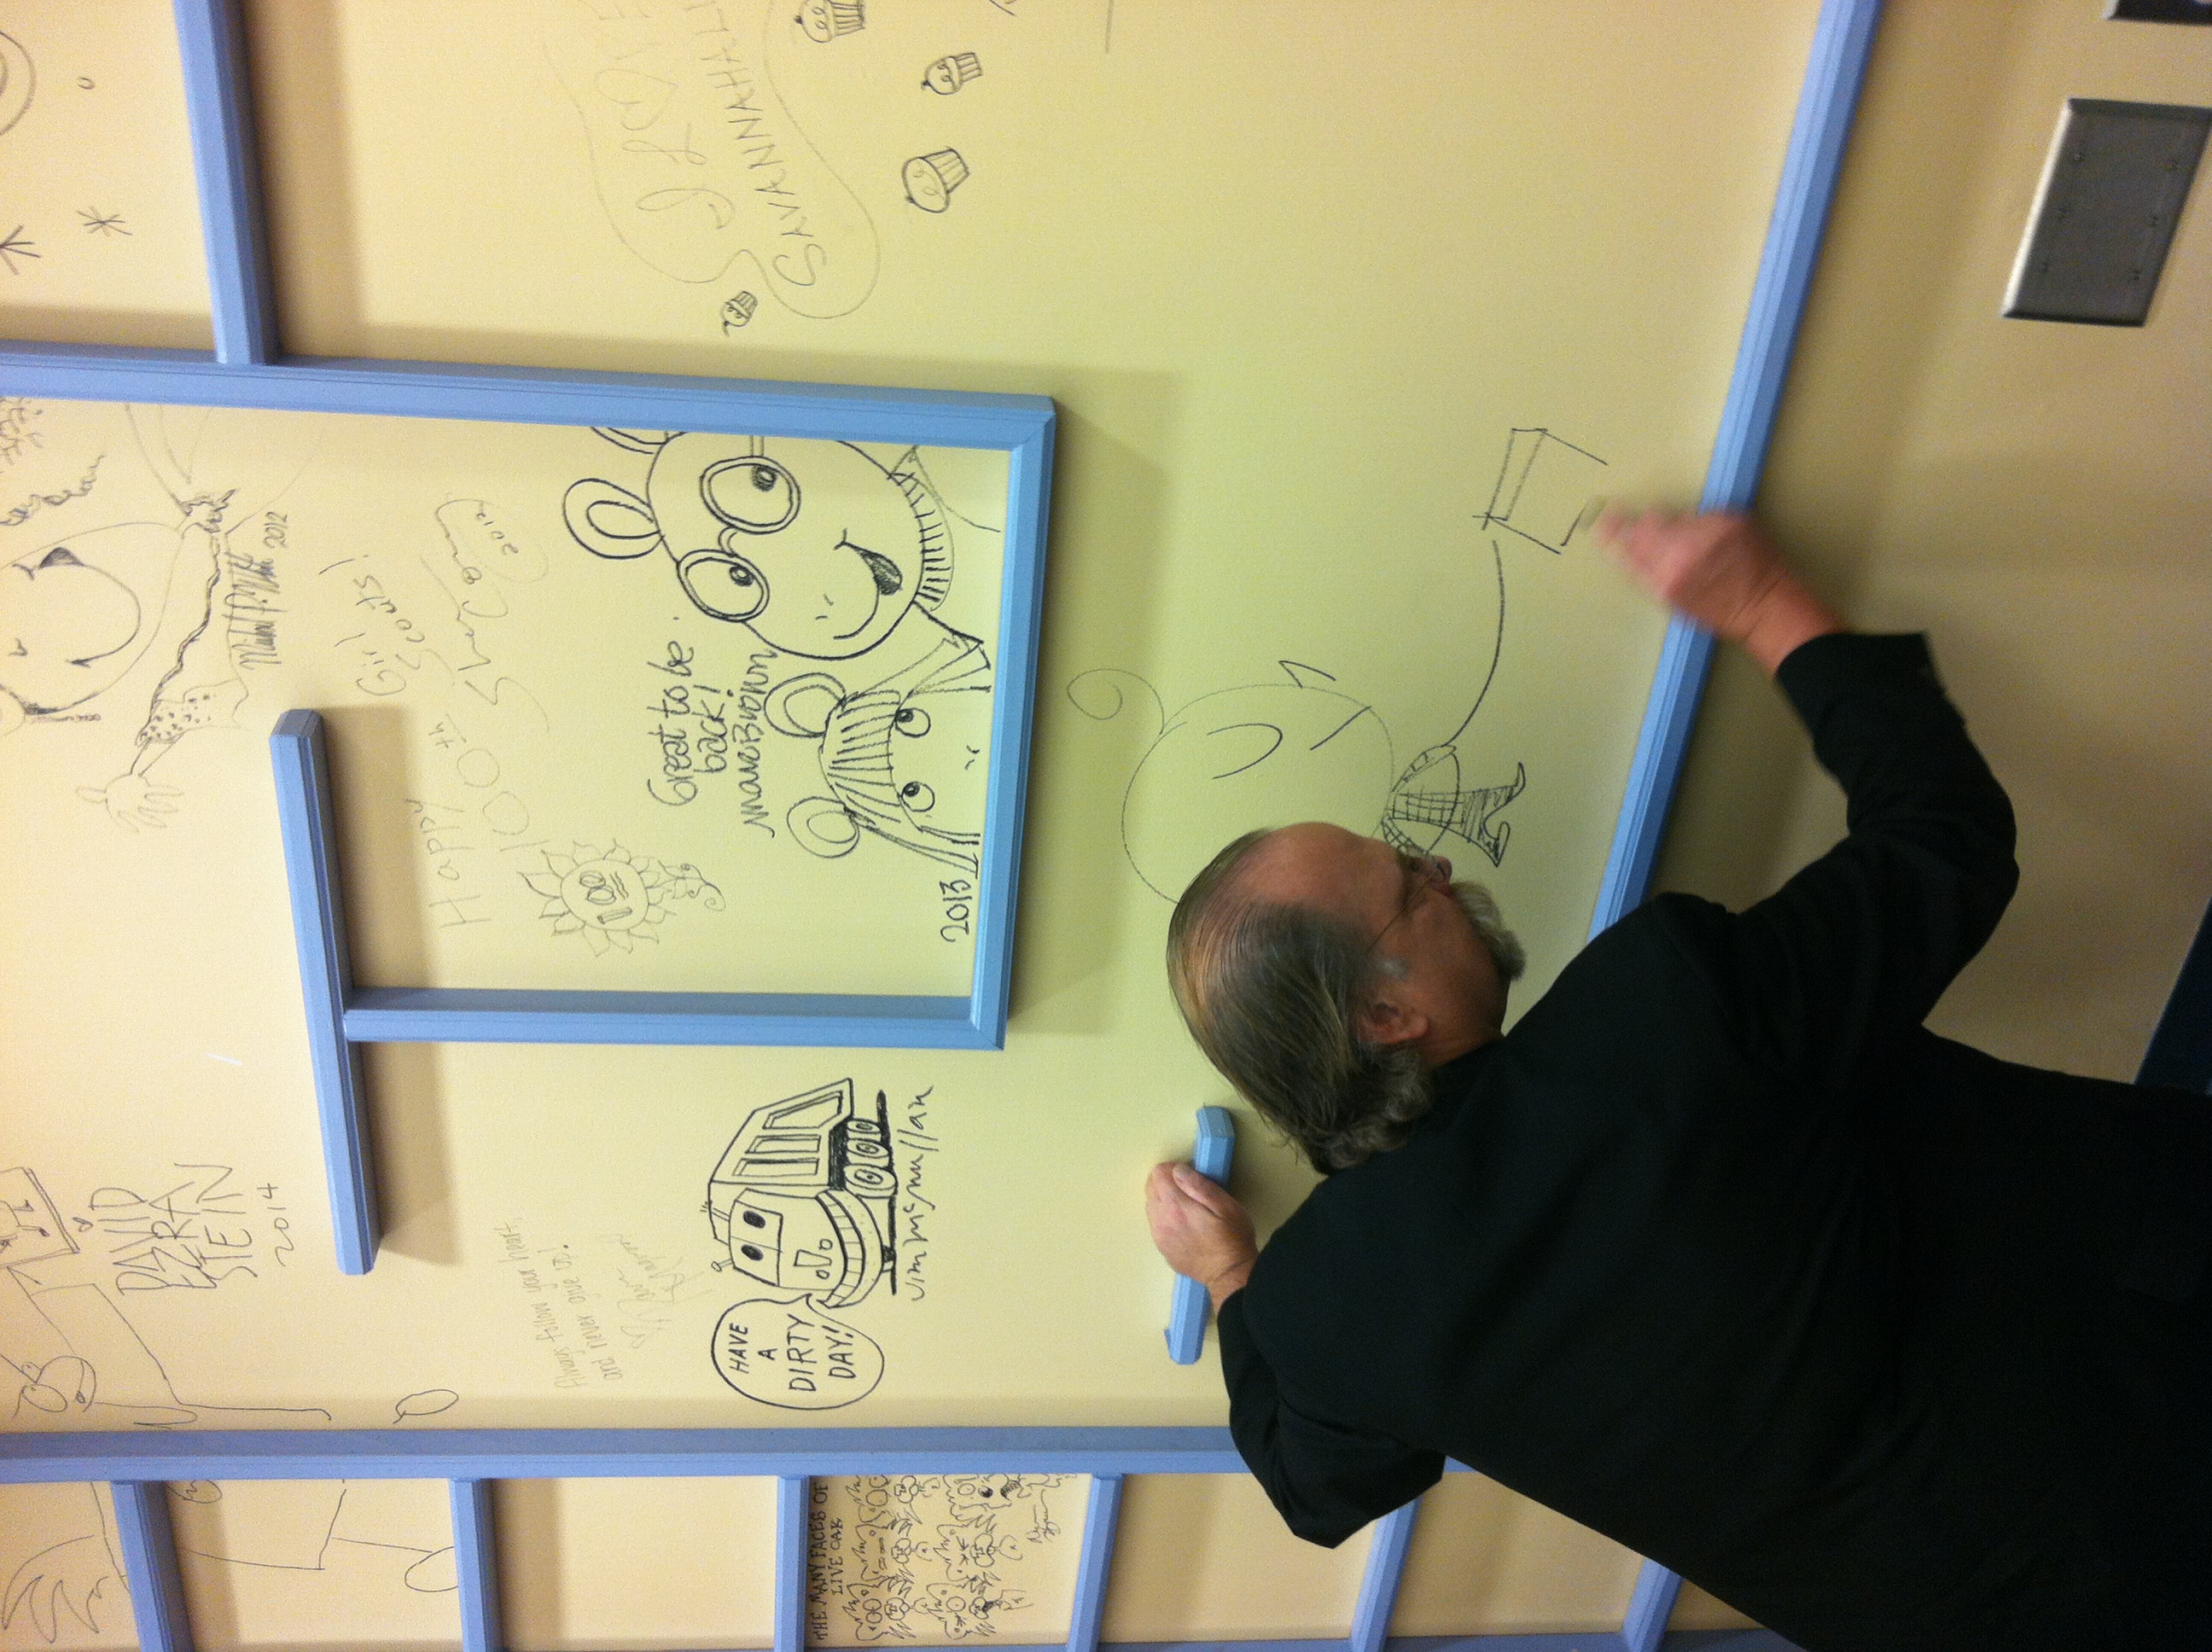 Got to see Bob Staake drawing on the wall of the public library!